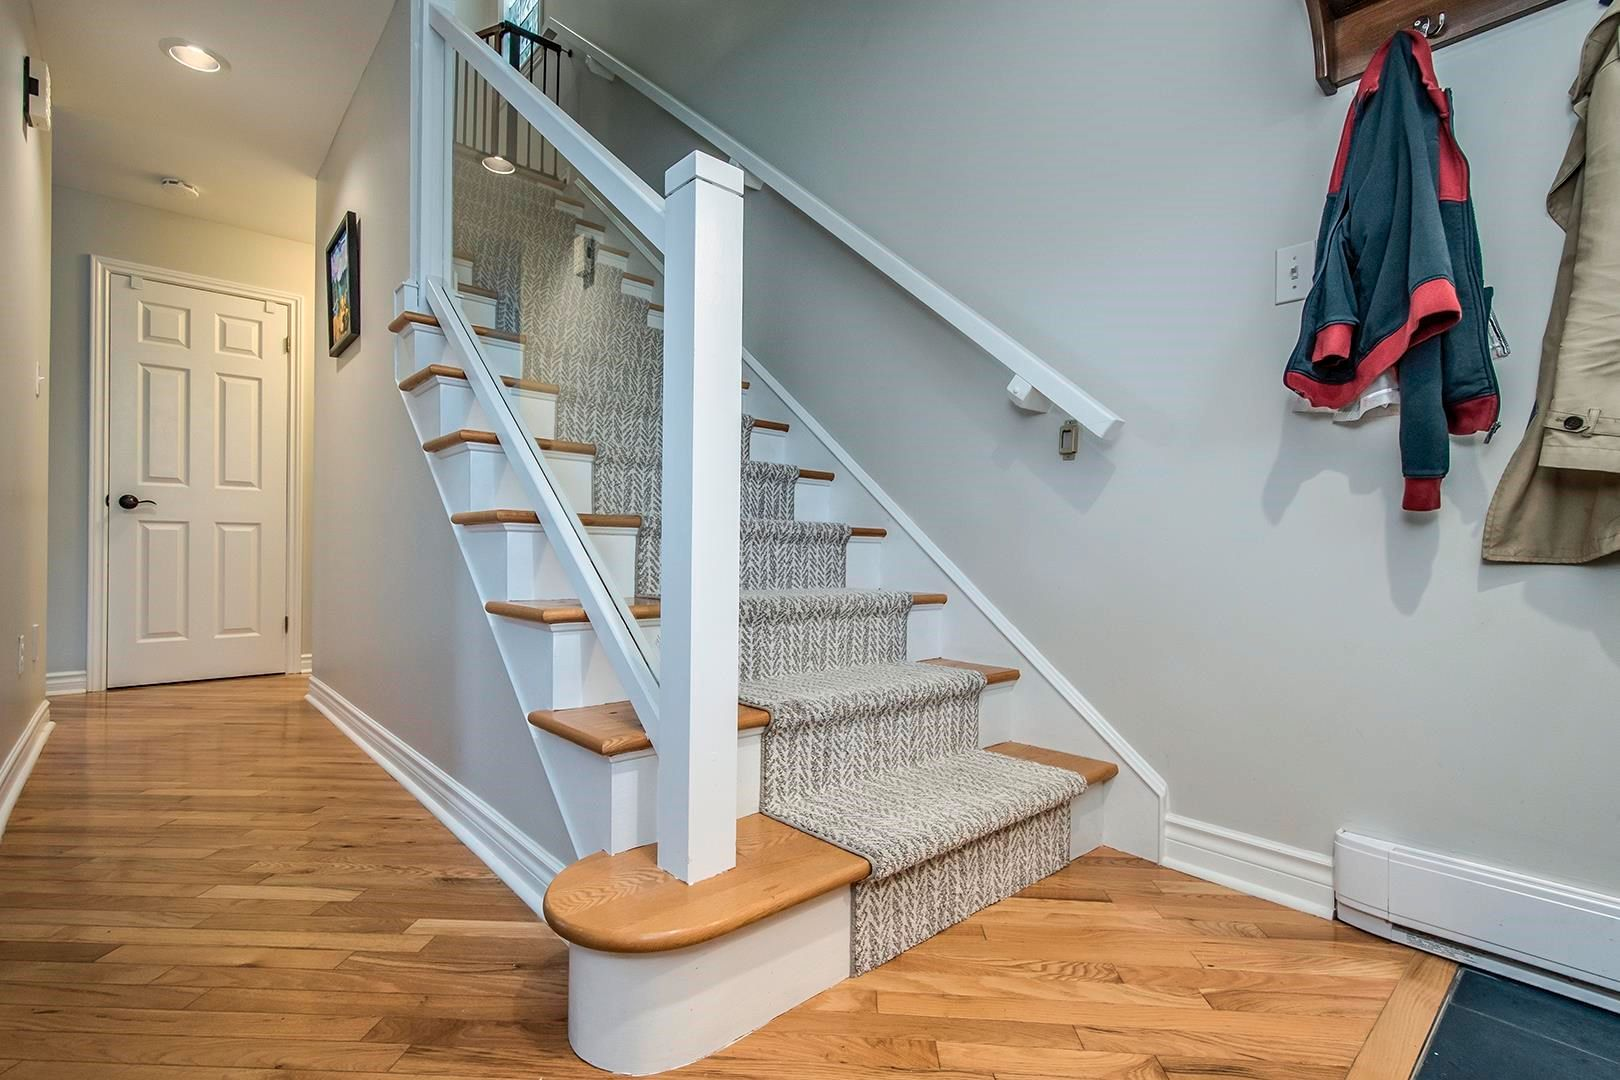 Photo 15: Photos: 64 Roy Crescent in Bedford: 20-Bedford Residential for sale (Halifax-Dartmouth)  : MLS®# 202110846